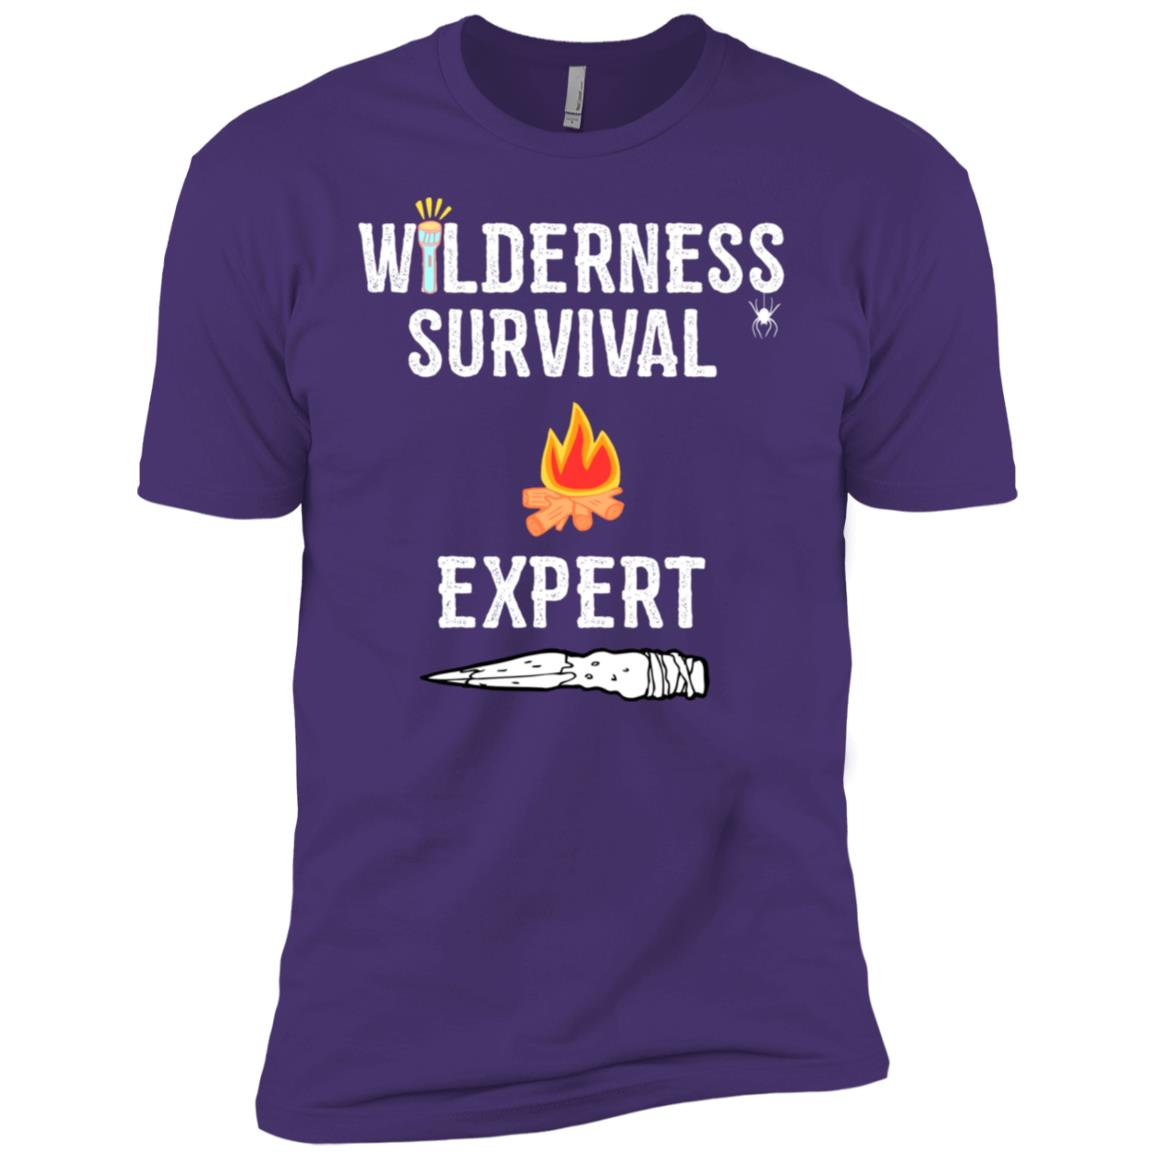 Wild Wilderness Survival Expert Outdoors Men Short Sleeve T-Shirt